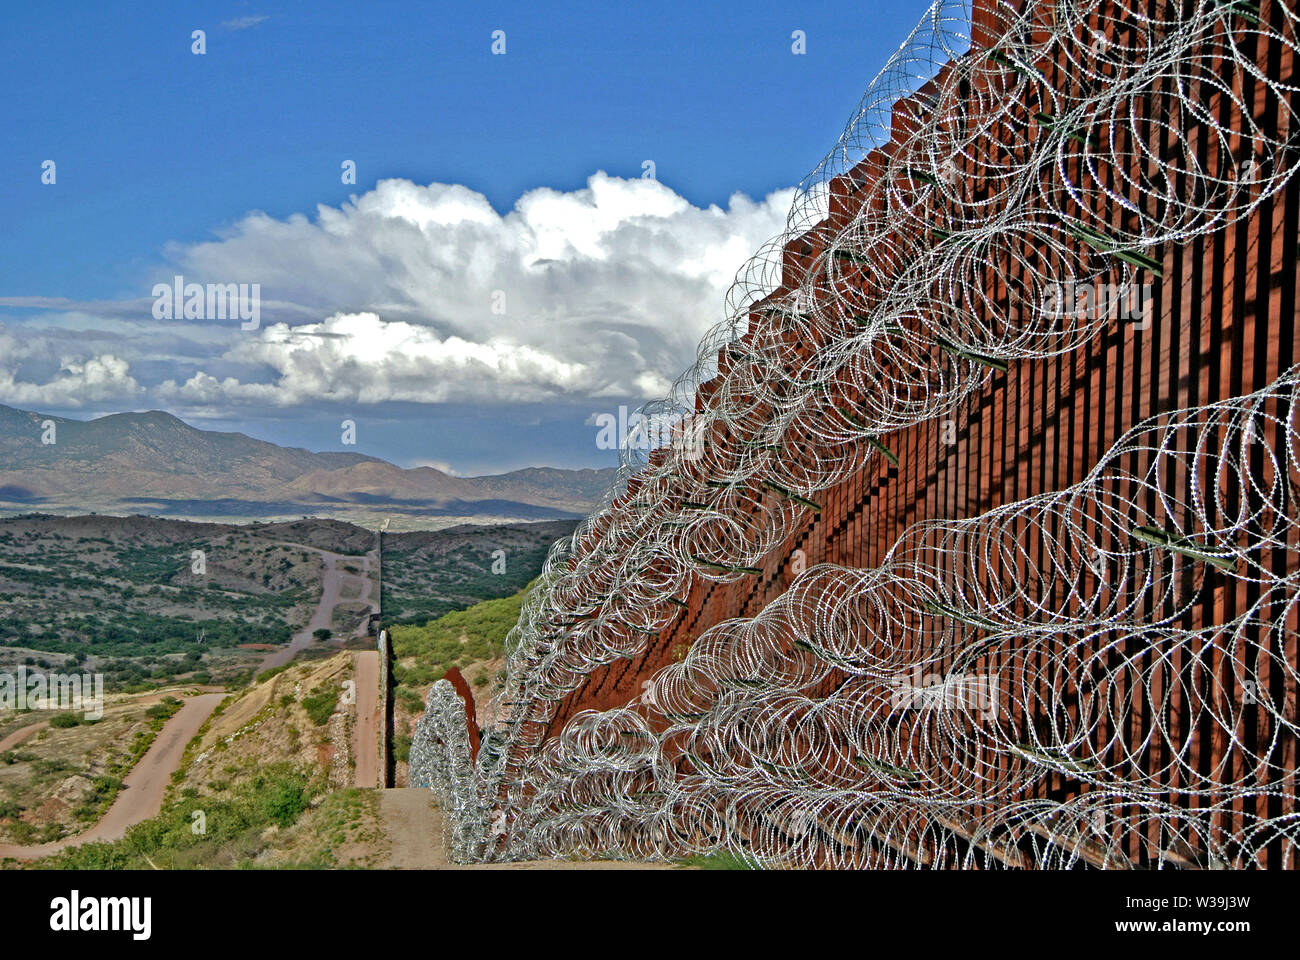 border fence in nogales arizona on us side Stock Photo